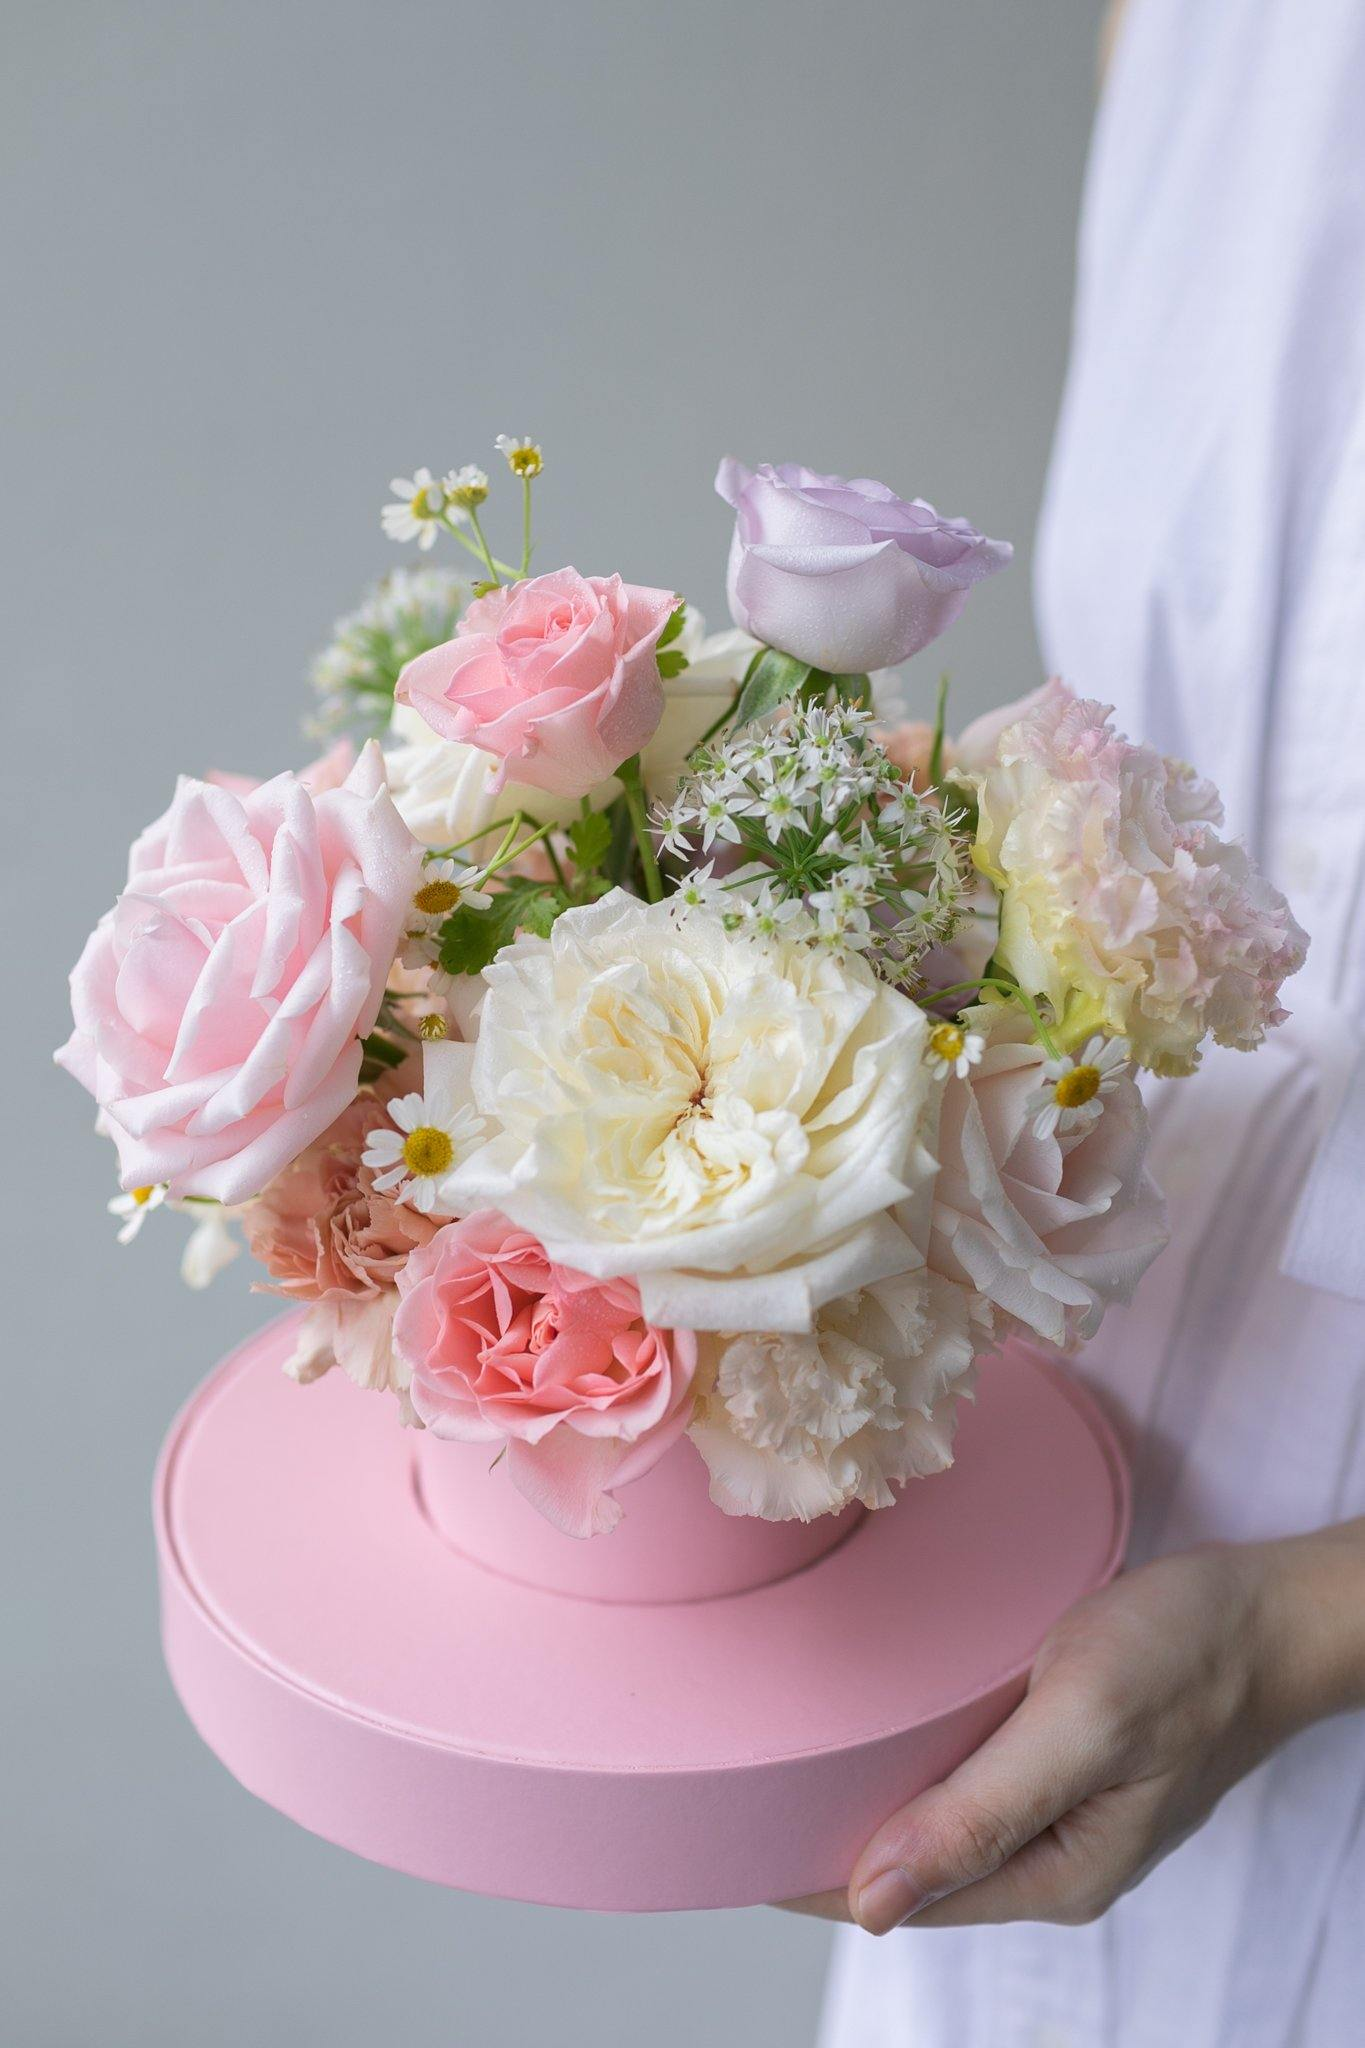 Let Them Eat Cake - Hwa Floral